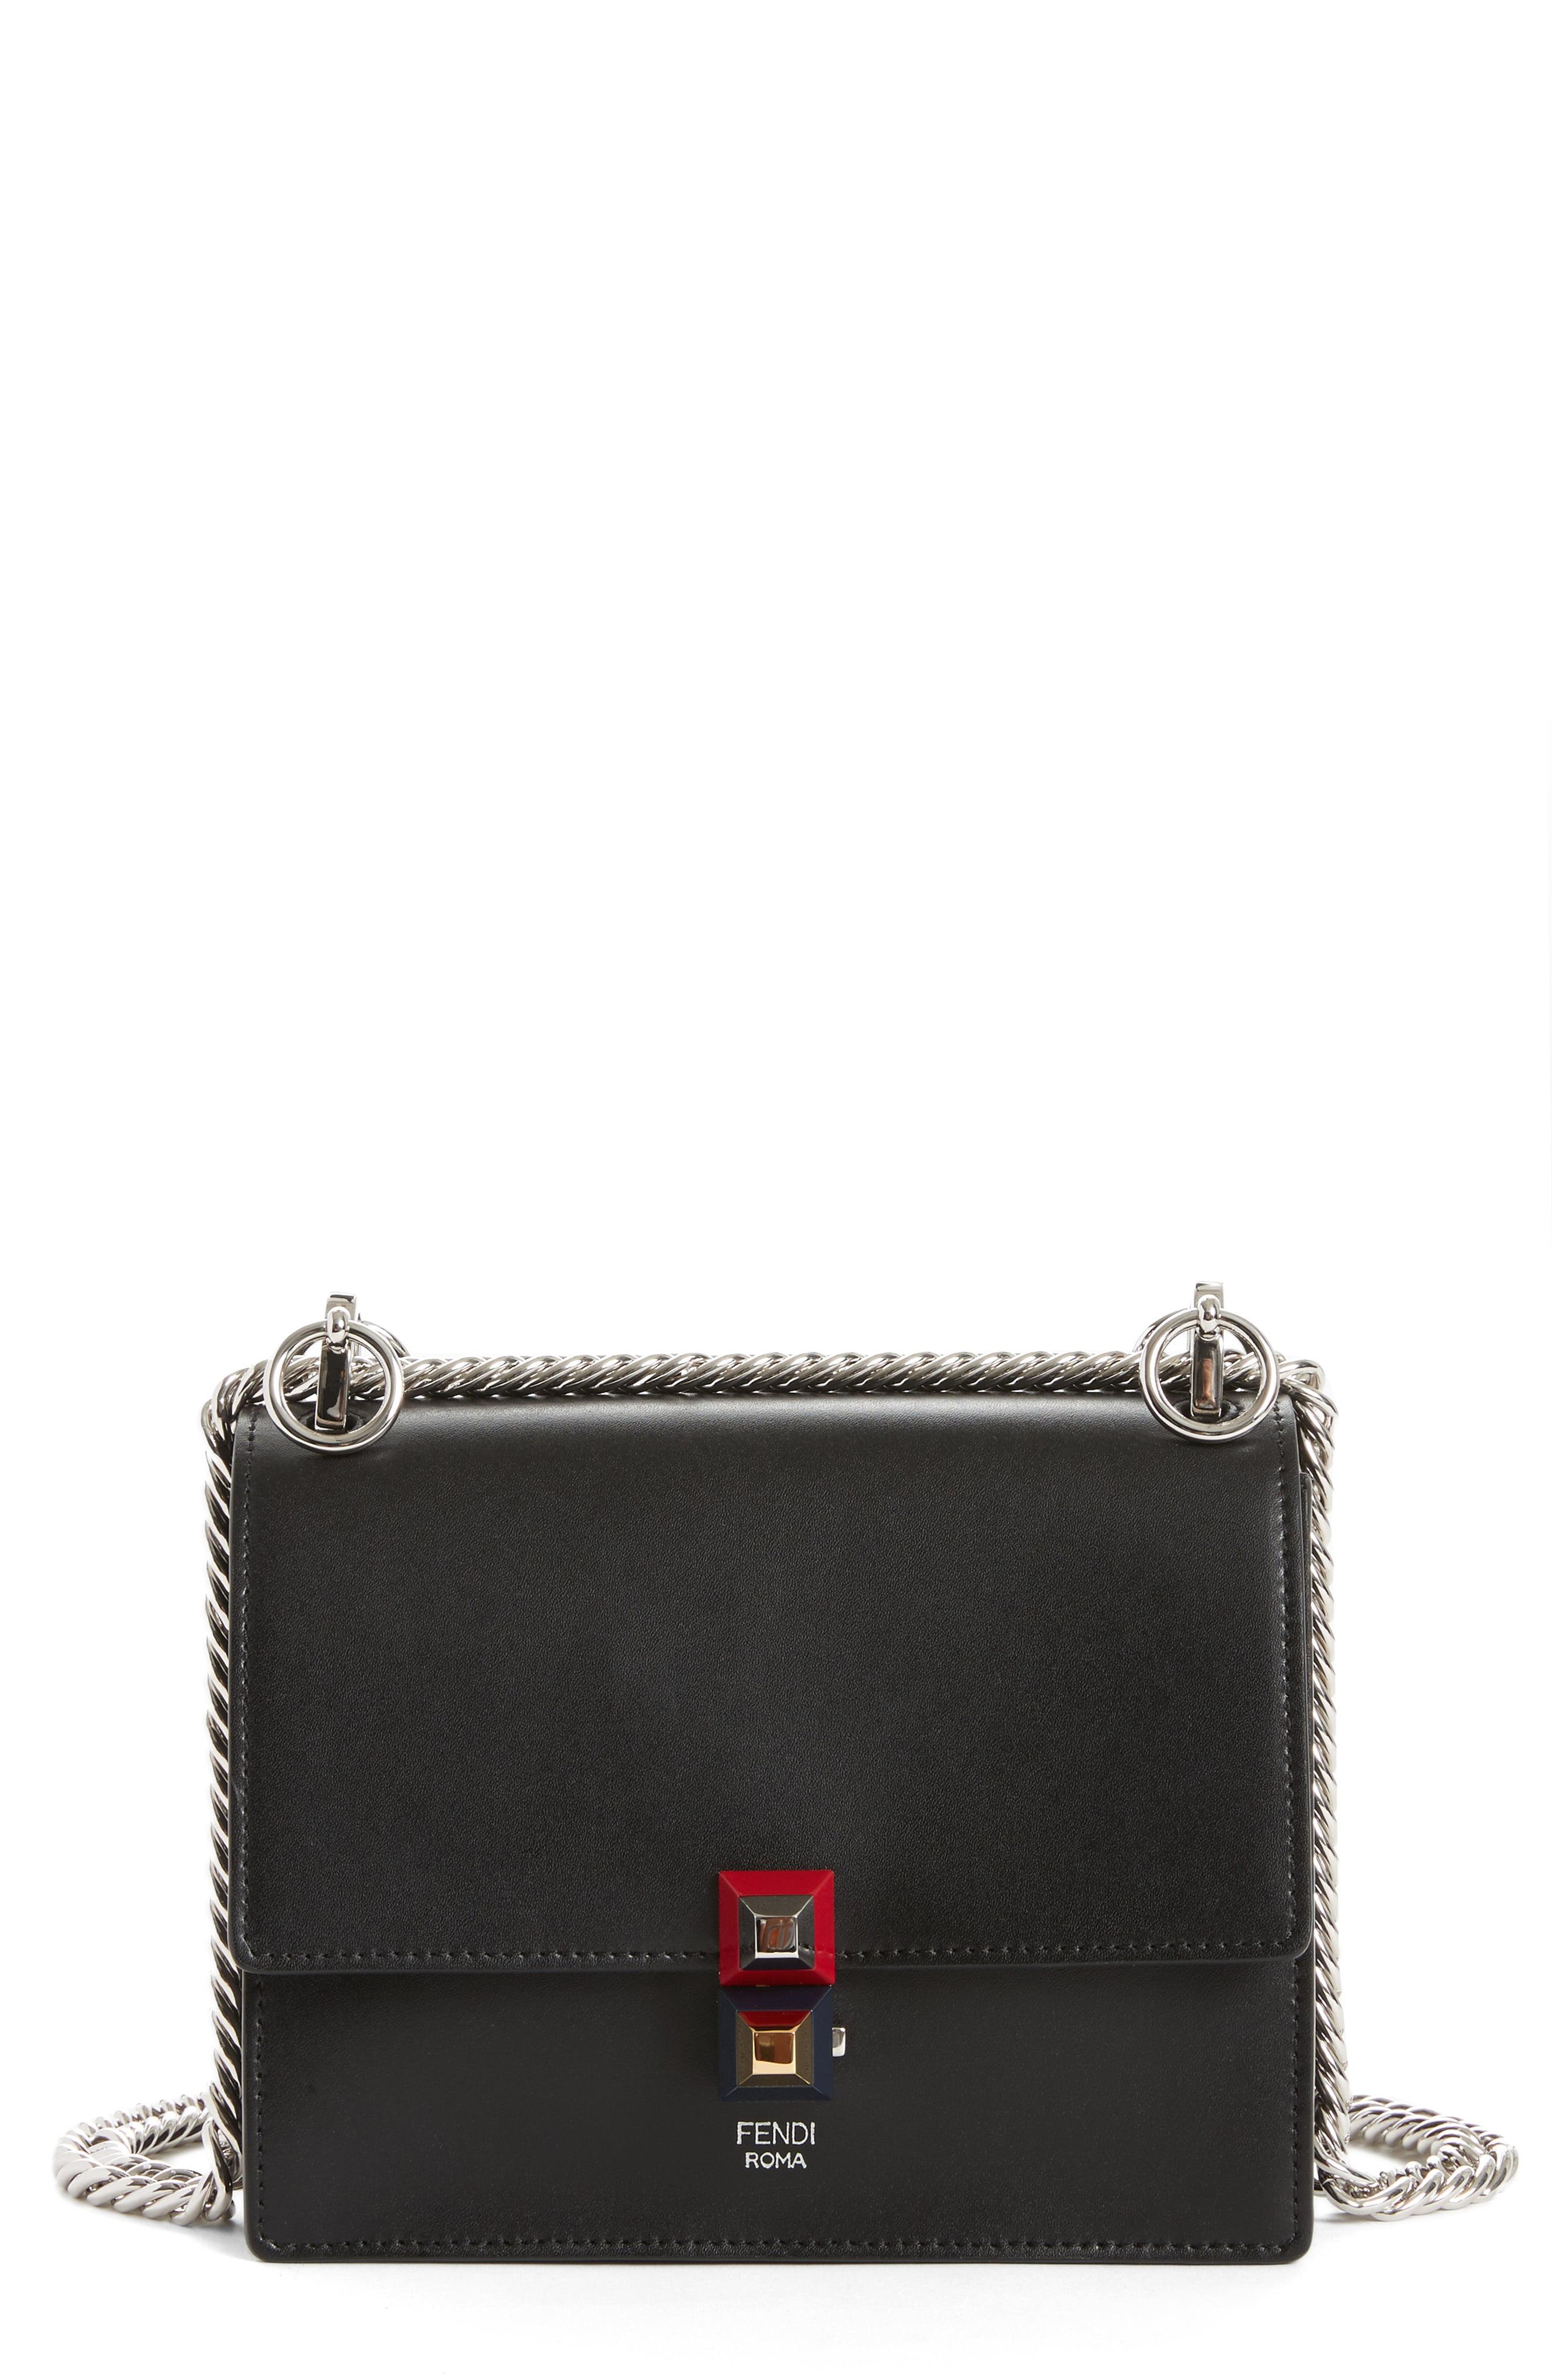 6fdb71846a73 Lyst - Fendi Small Kan I Leather Bag in Black